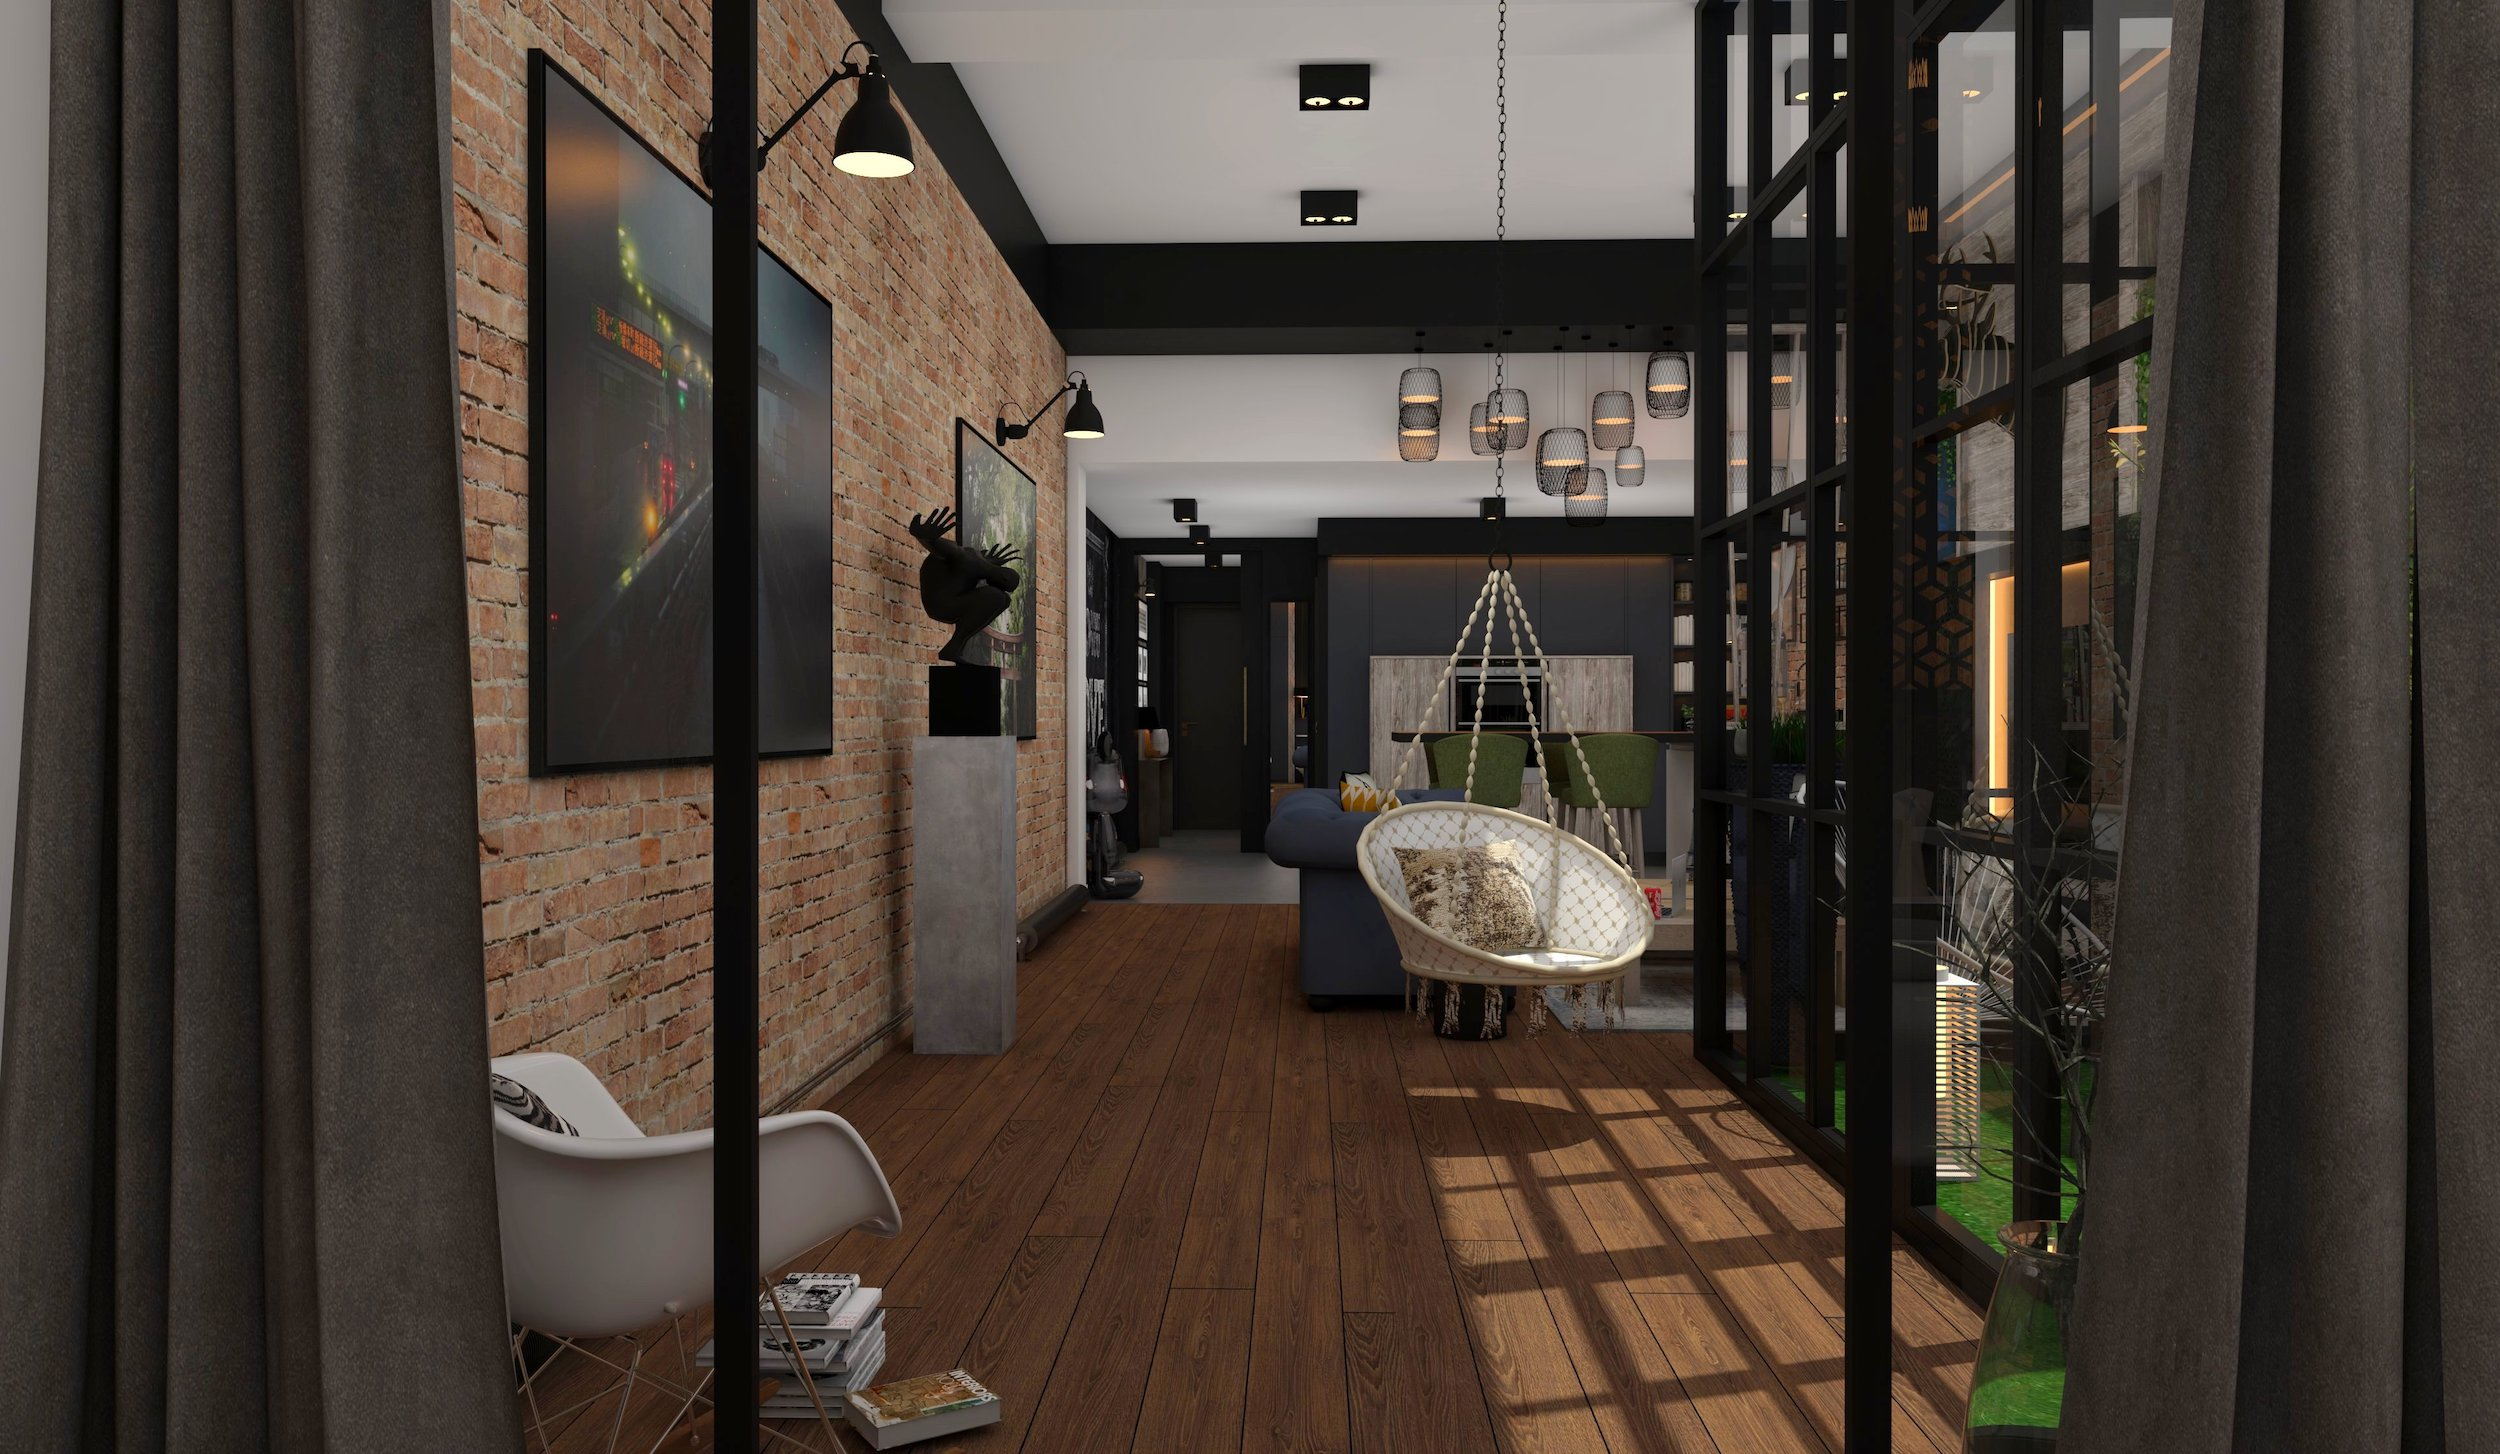 Renovation-architecture-loft-94-large-2